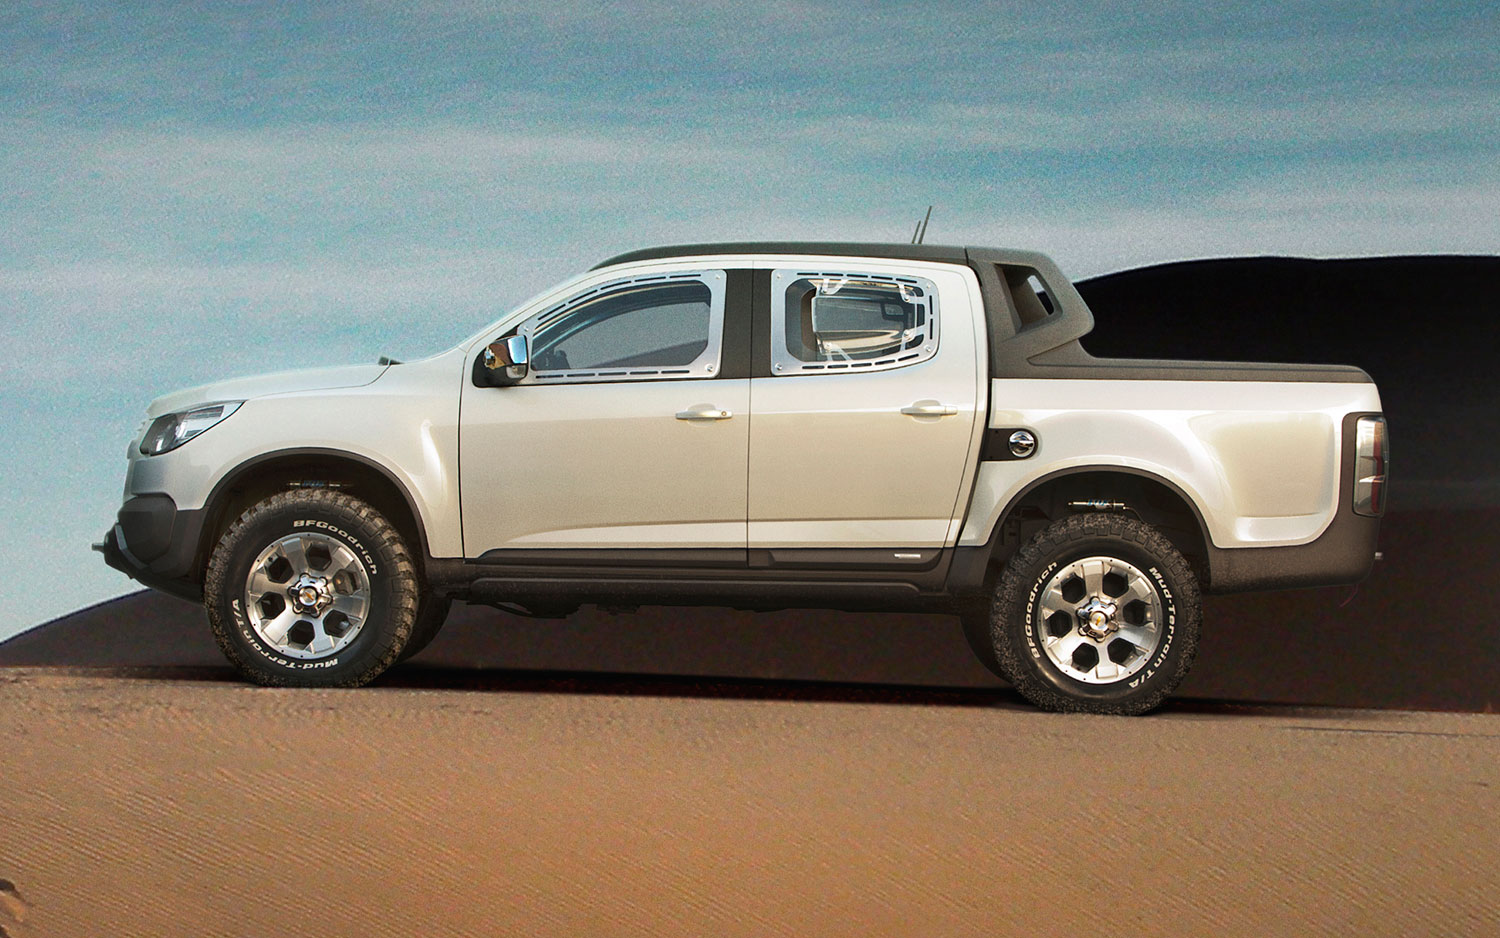 Is GM Building a Raptor-Fighter Based on the Chevy Colorado/GMC Canyon?